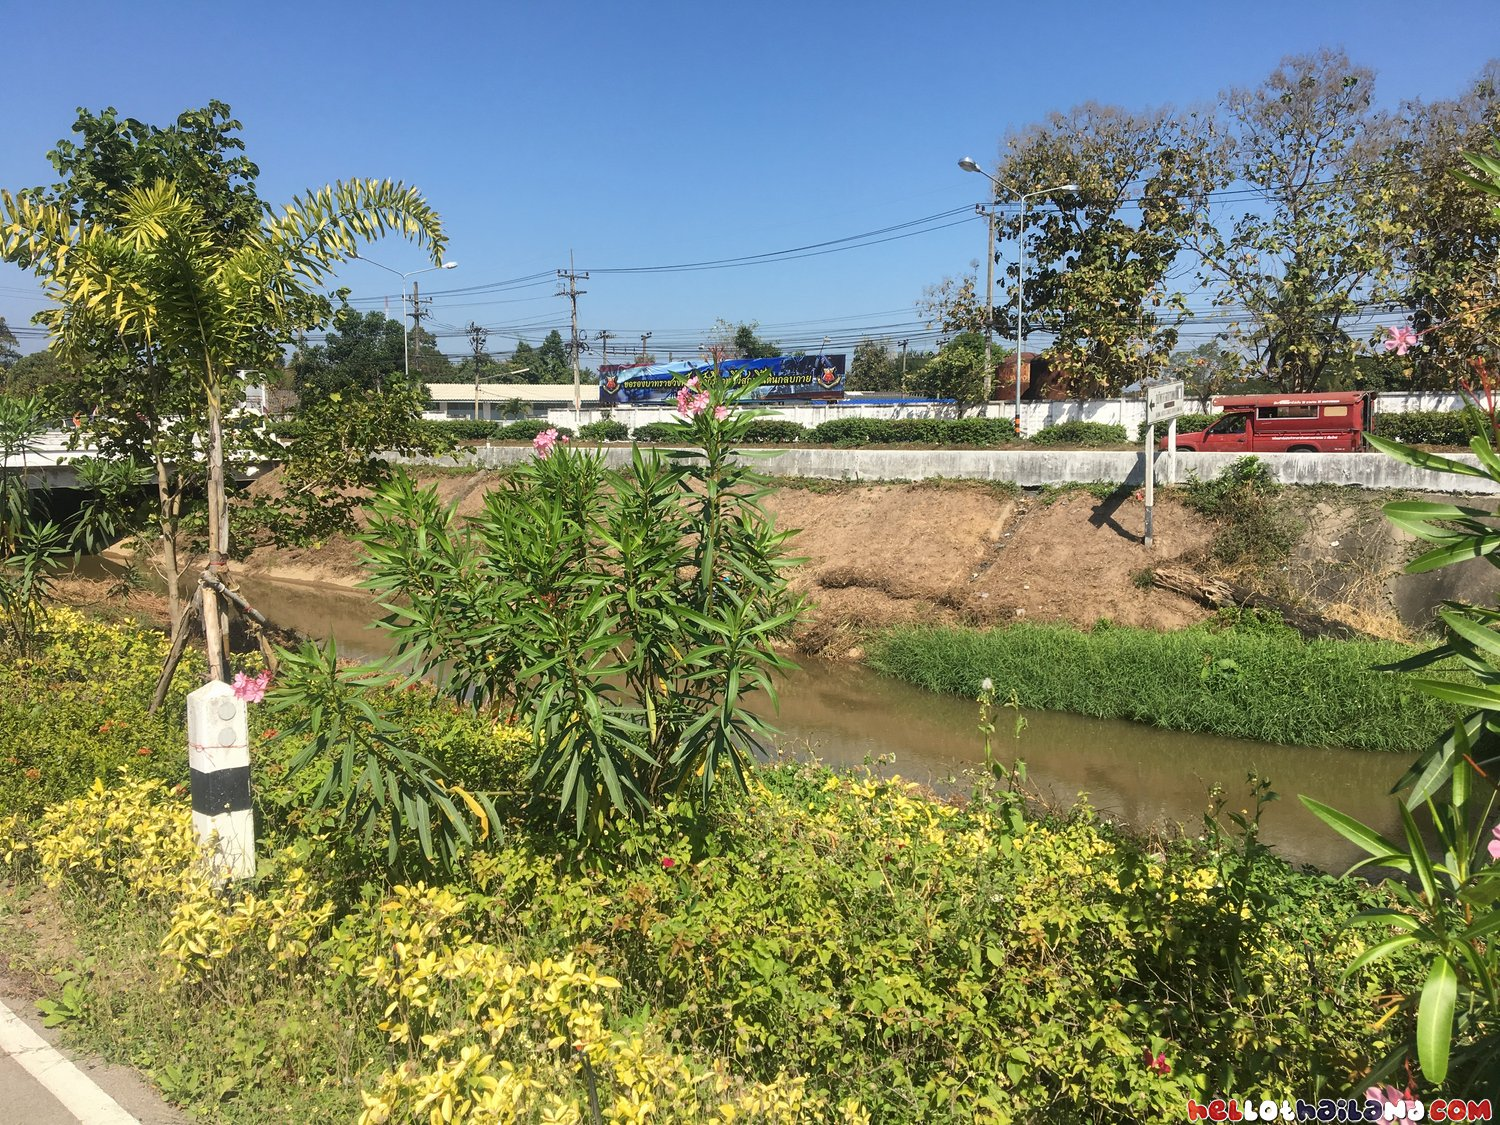 Runs Along The Chiang Mai Canal